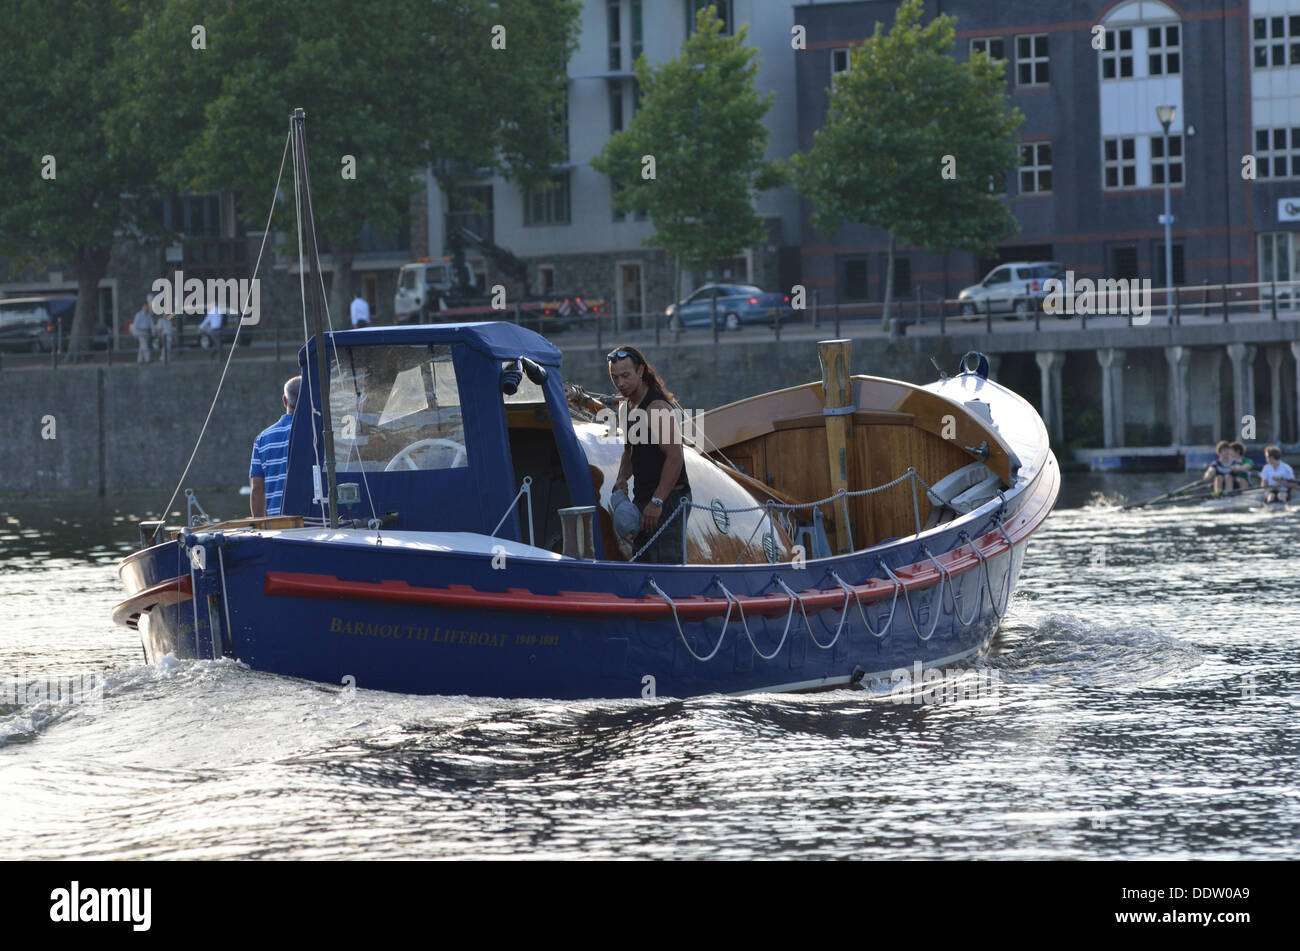 River Avon, people in a motor boat on the river - Stock Image